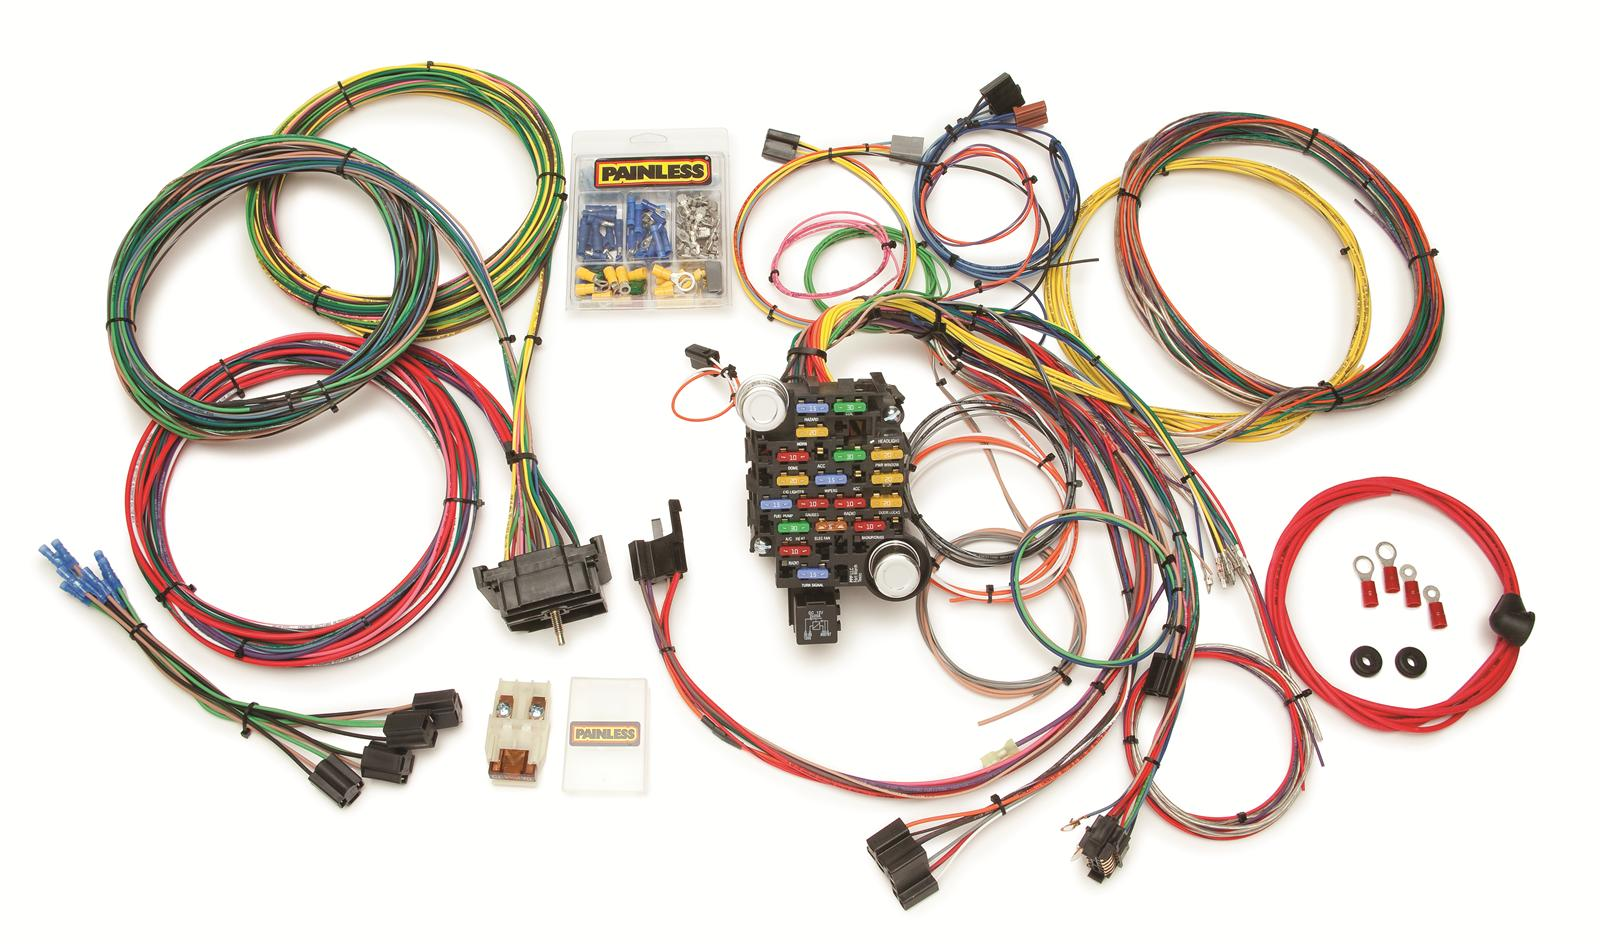 prf 10206_xl painless performance gmc chevy truck harnesses 10206 free electrical wiring harness at gsmportal.co